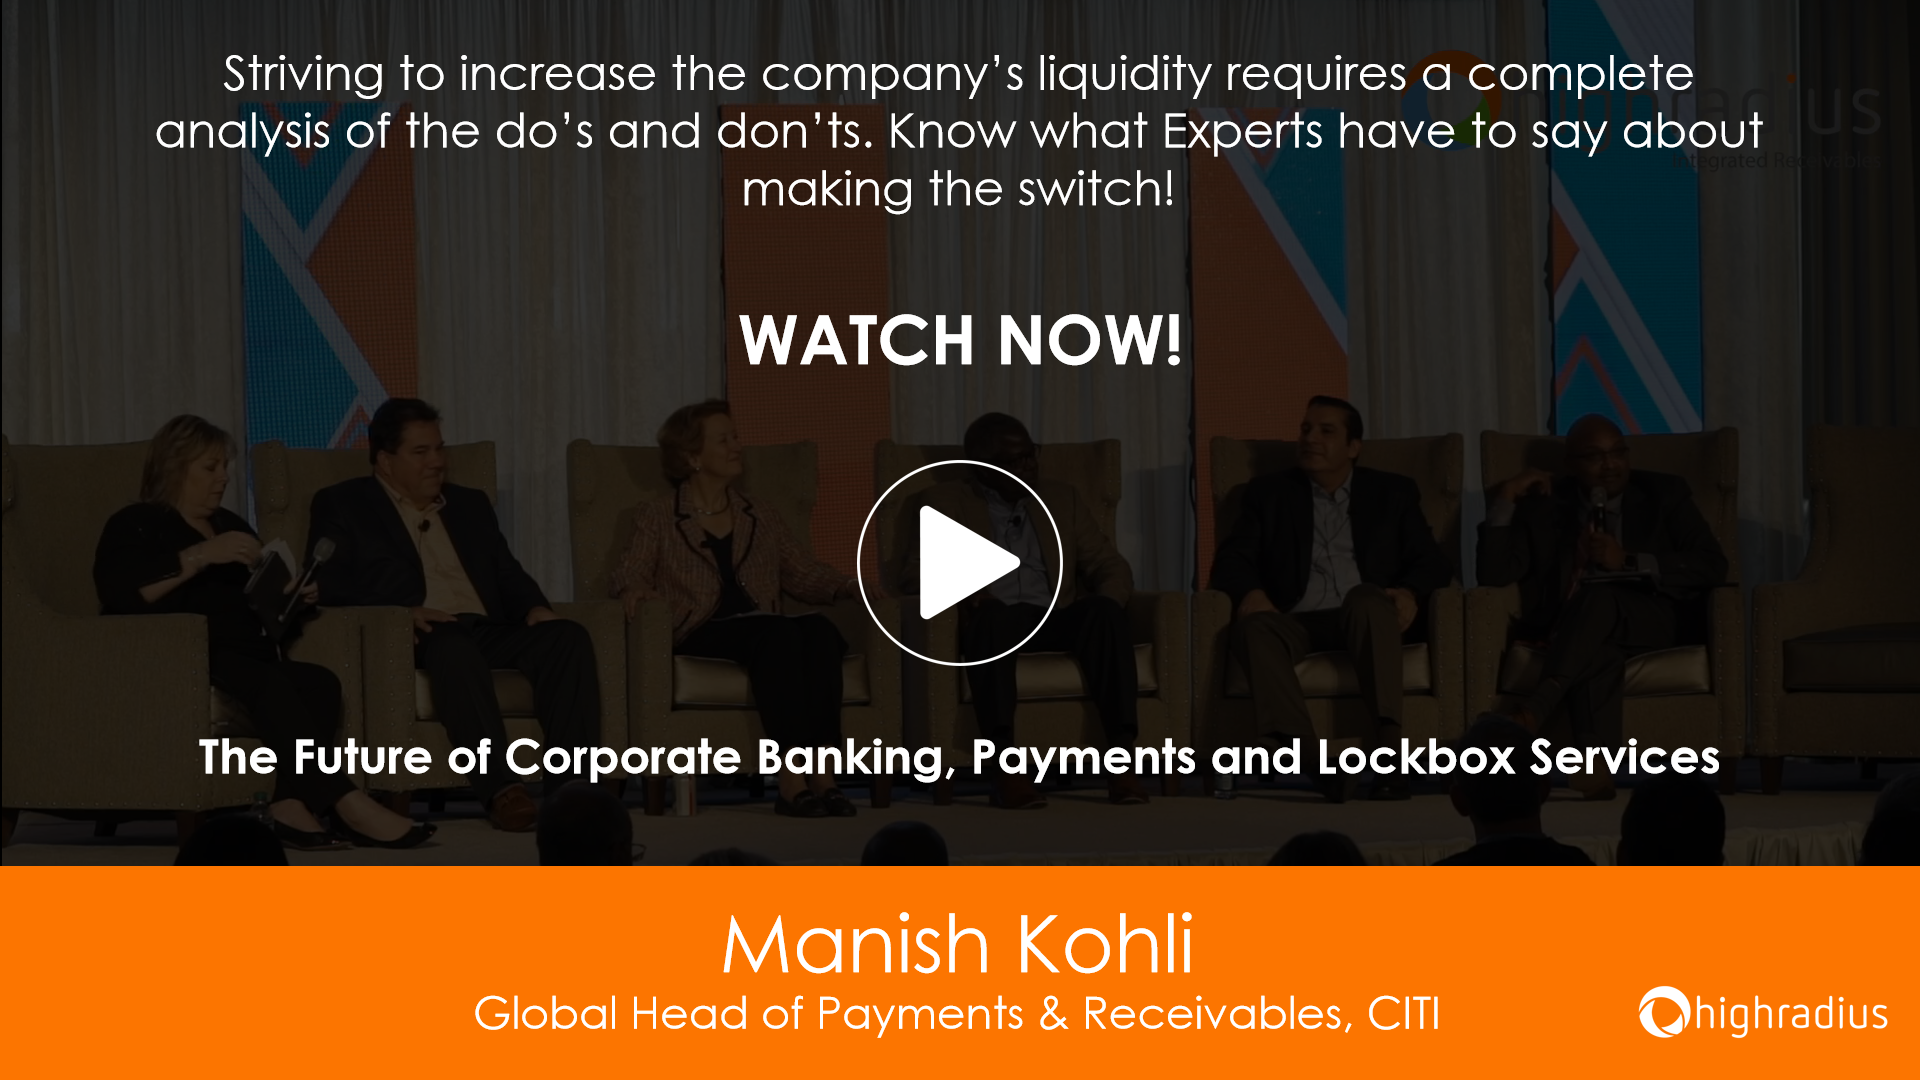 The Future of Corporate Banking, Payments and Lockbox Services